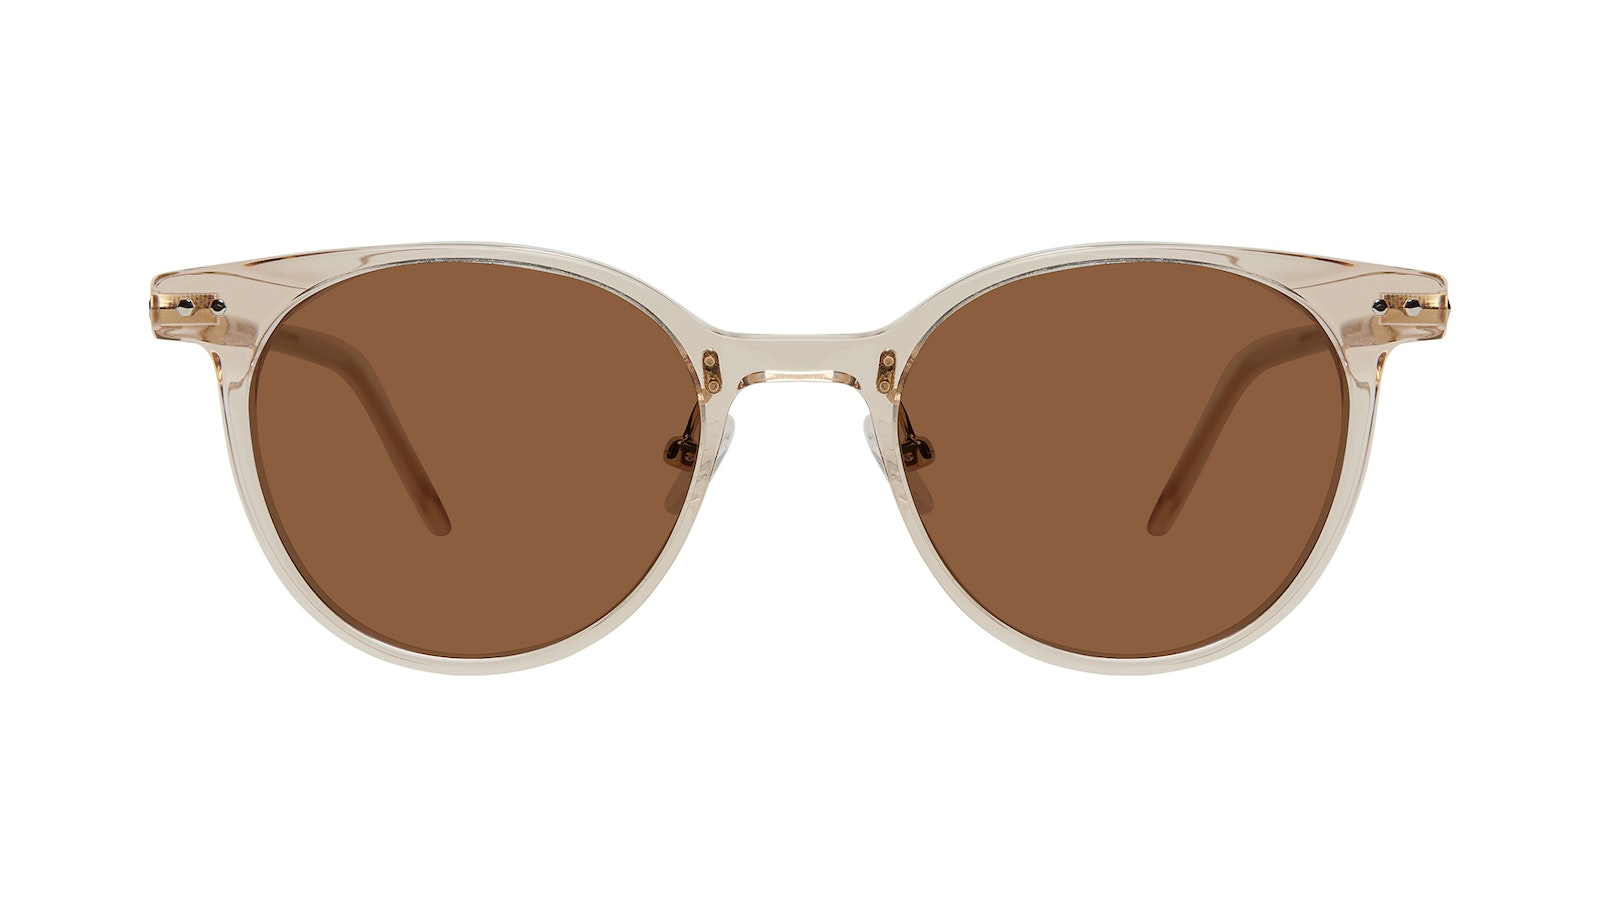 Affordable Fashion Glasses Round Sunglasses Women Lightheart Blond